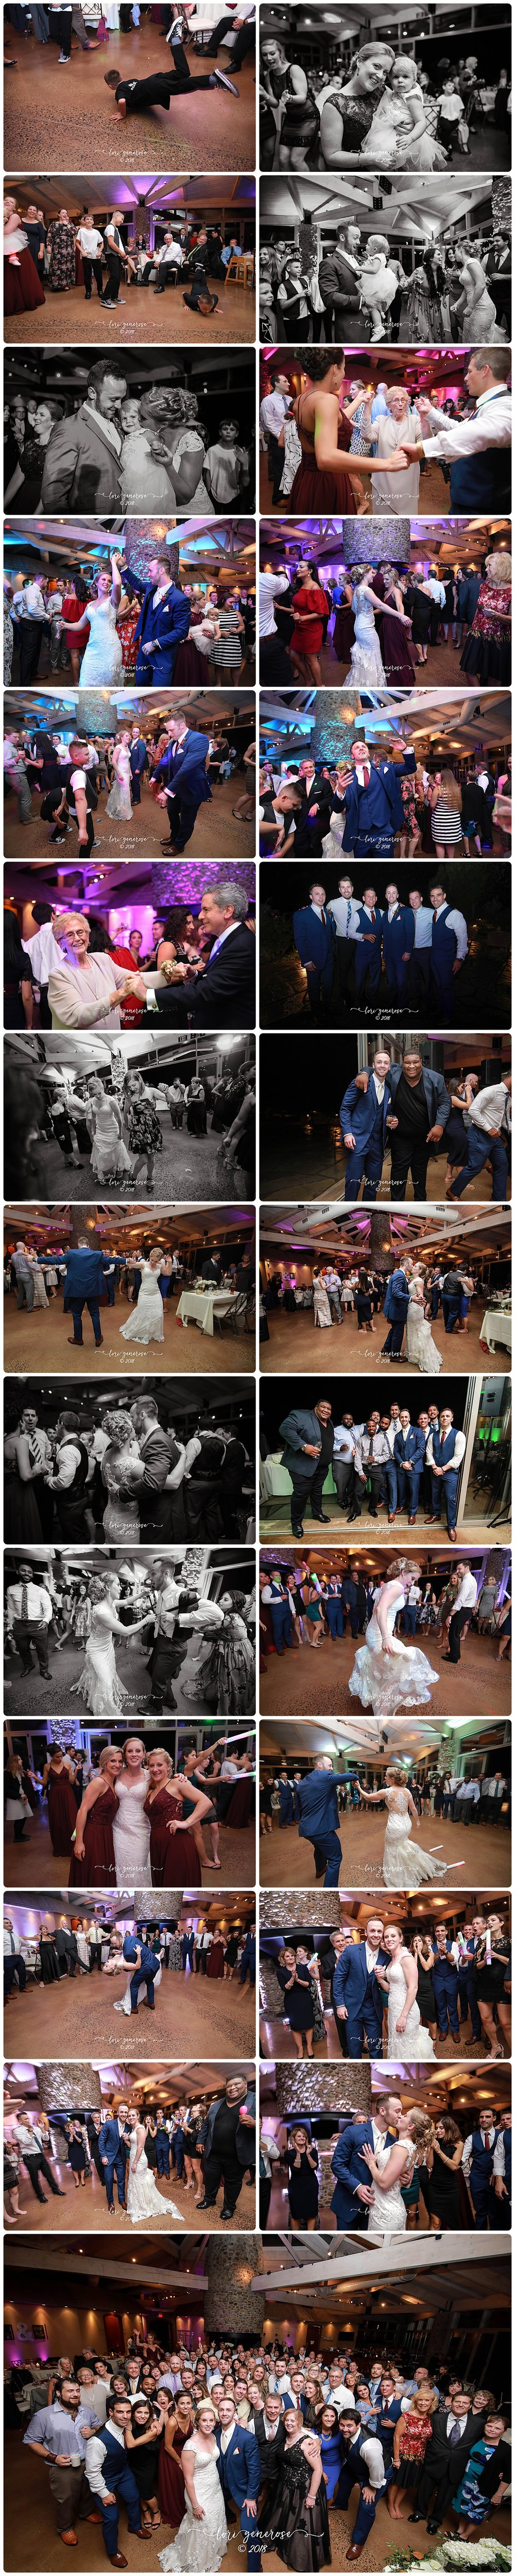 lgphotographyylorigeneroseriverviewcountryclubweddingoctoberweddingreceptiondetailsdancingbrideandgroom.jpg